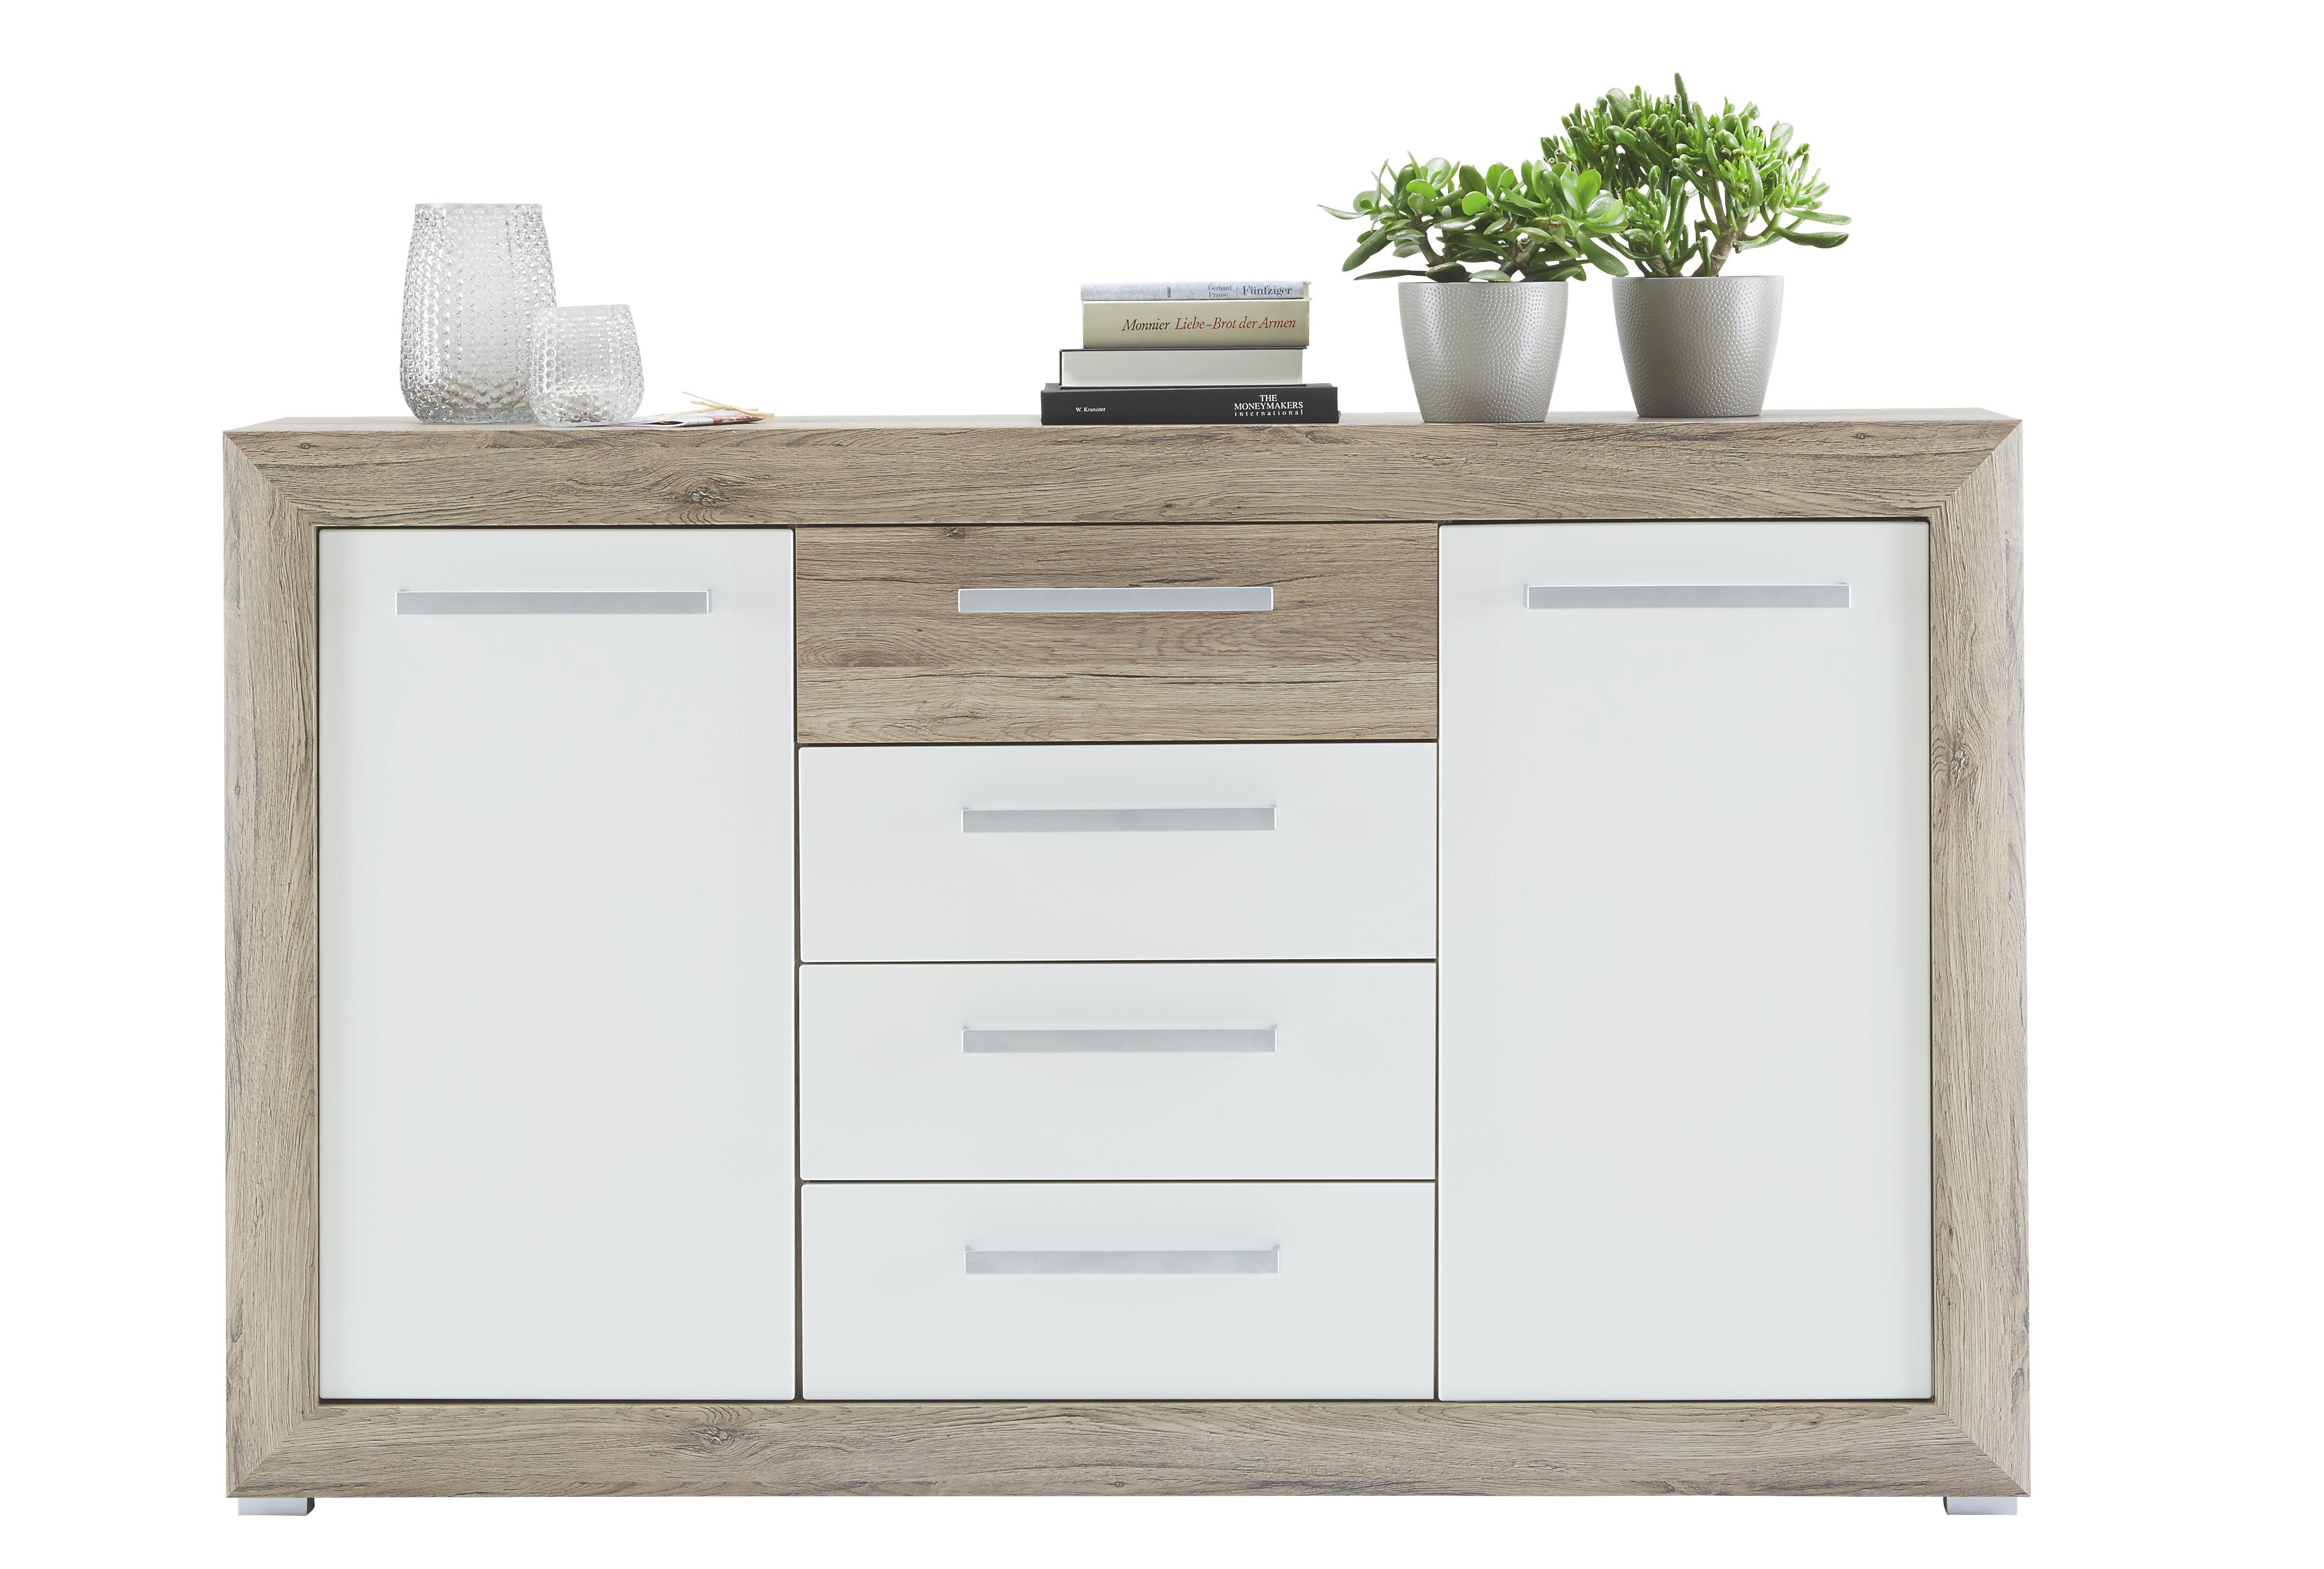 Beau Gallery Of Interesting Affordable Affordable Sideboard In Eichewei  Hochglanz With Highboard Eiche Wei With Designer Highboard With Highboard  Wei With Otto ...